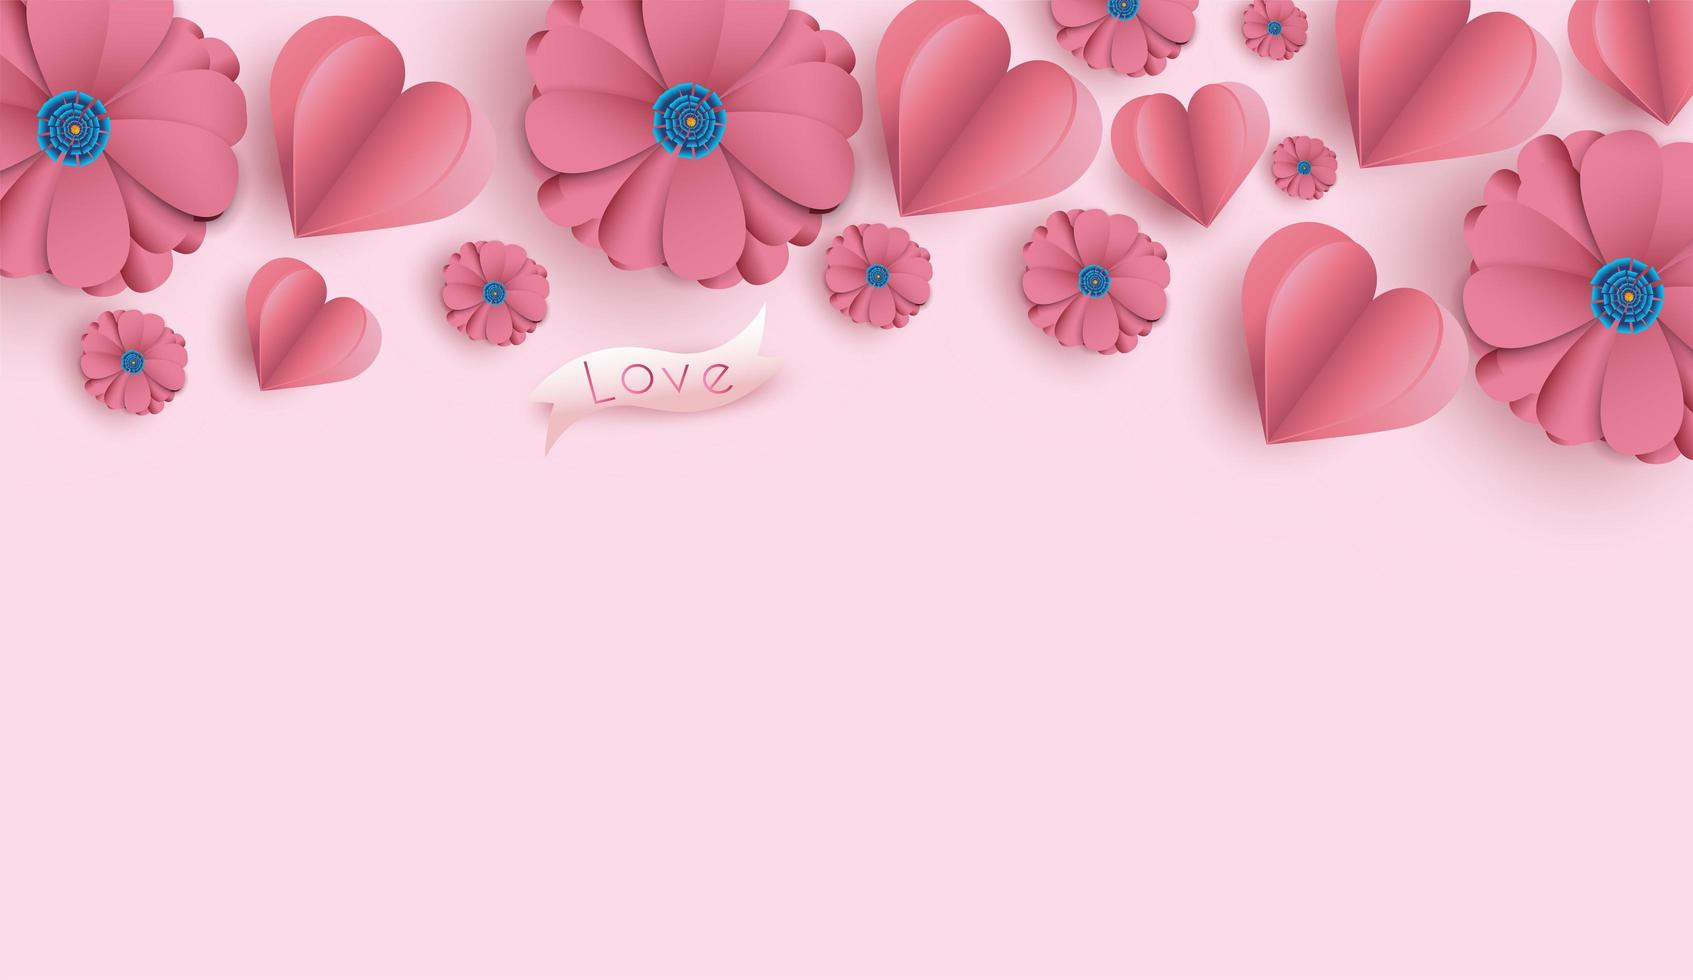 Valentine's Day background with paper cut flowers and hearts.